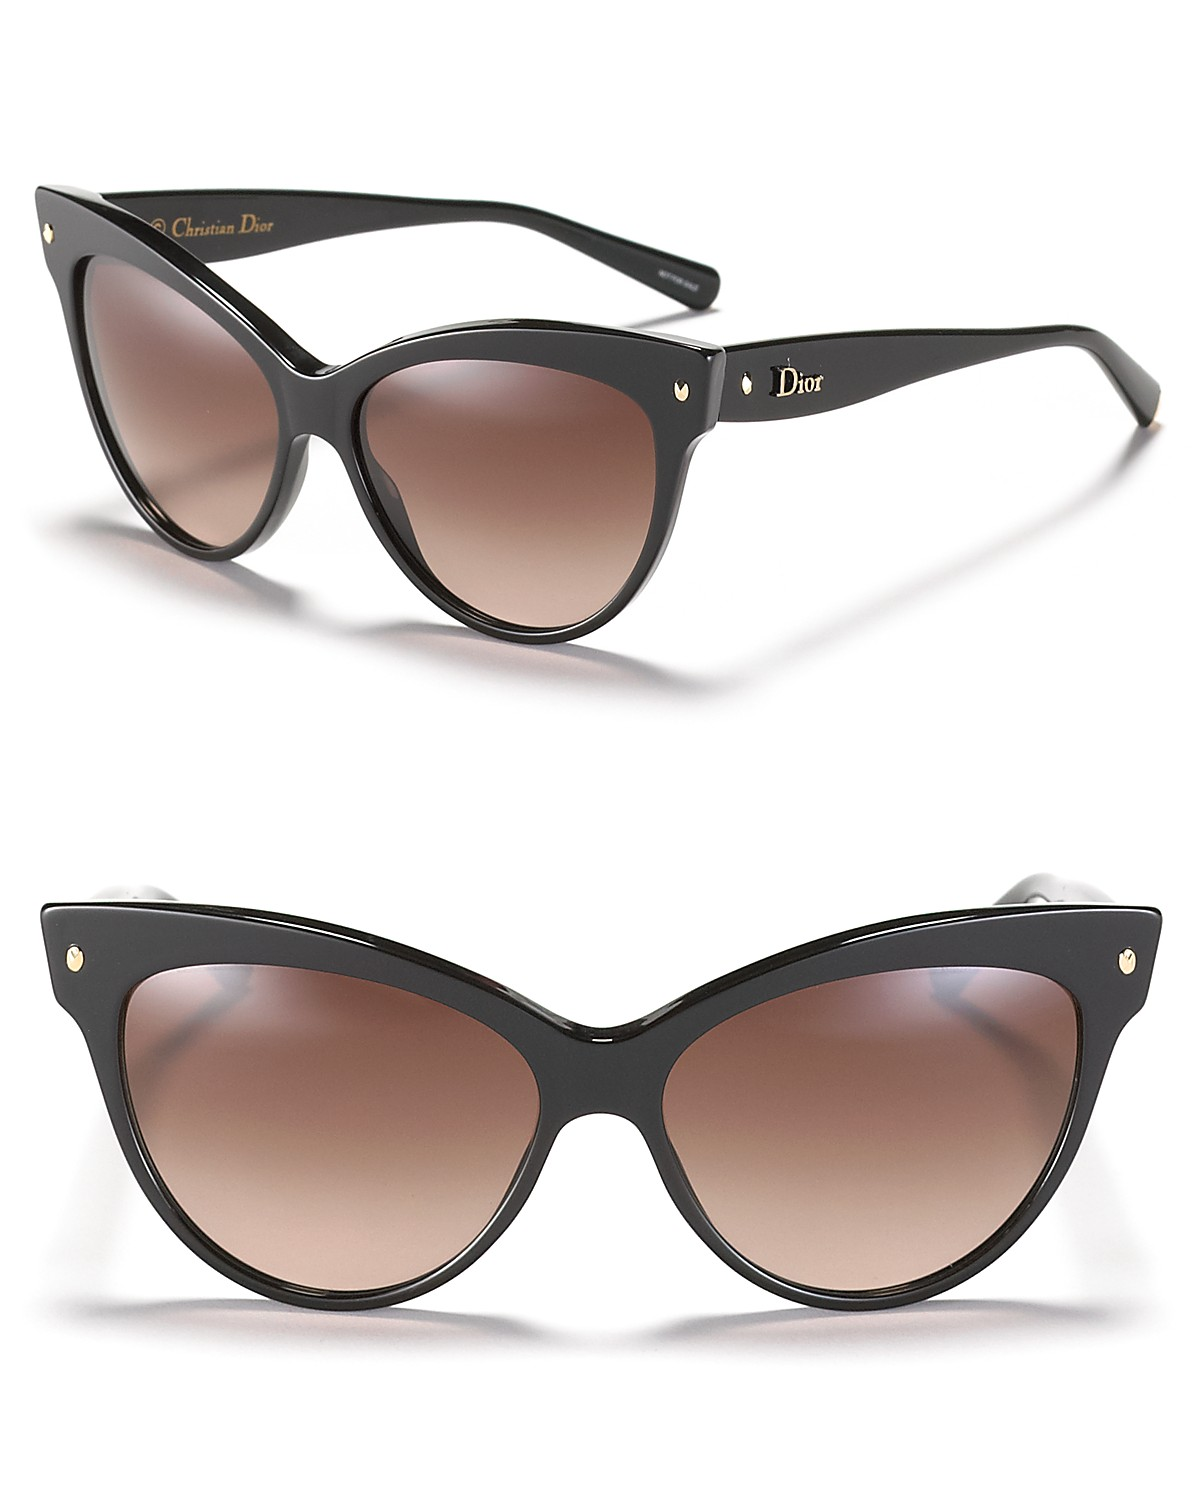 Dior Cat Eye Sunglasses with Logo on Temple | Bloomingdale's